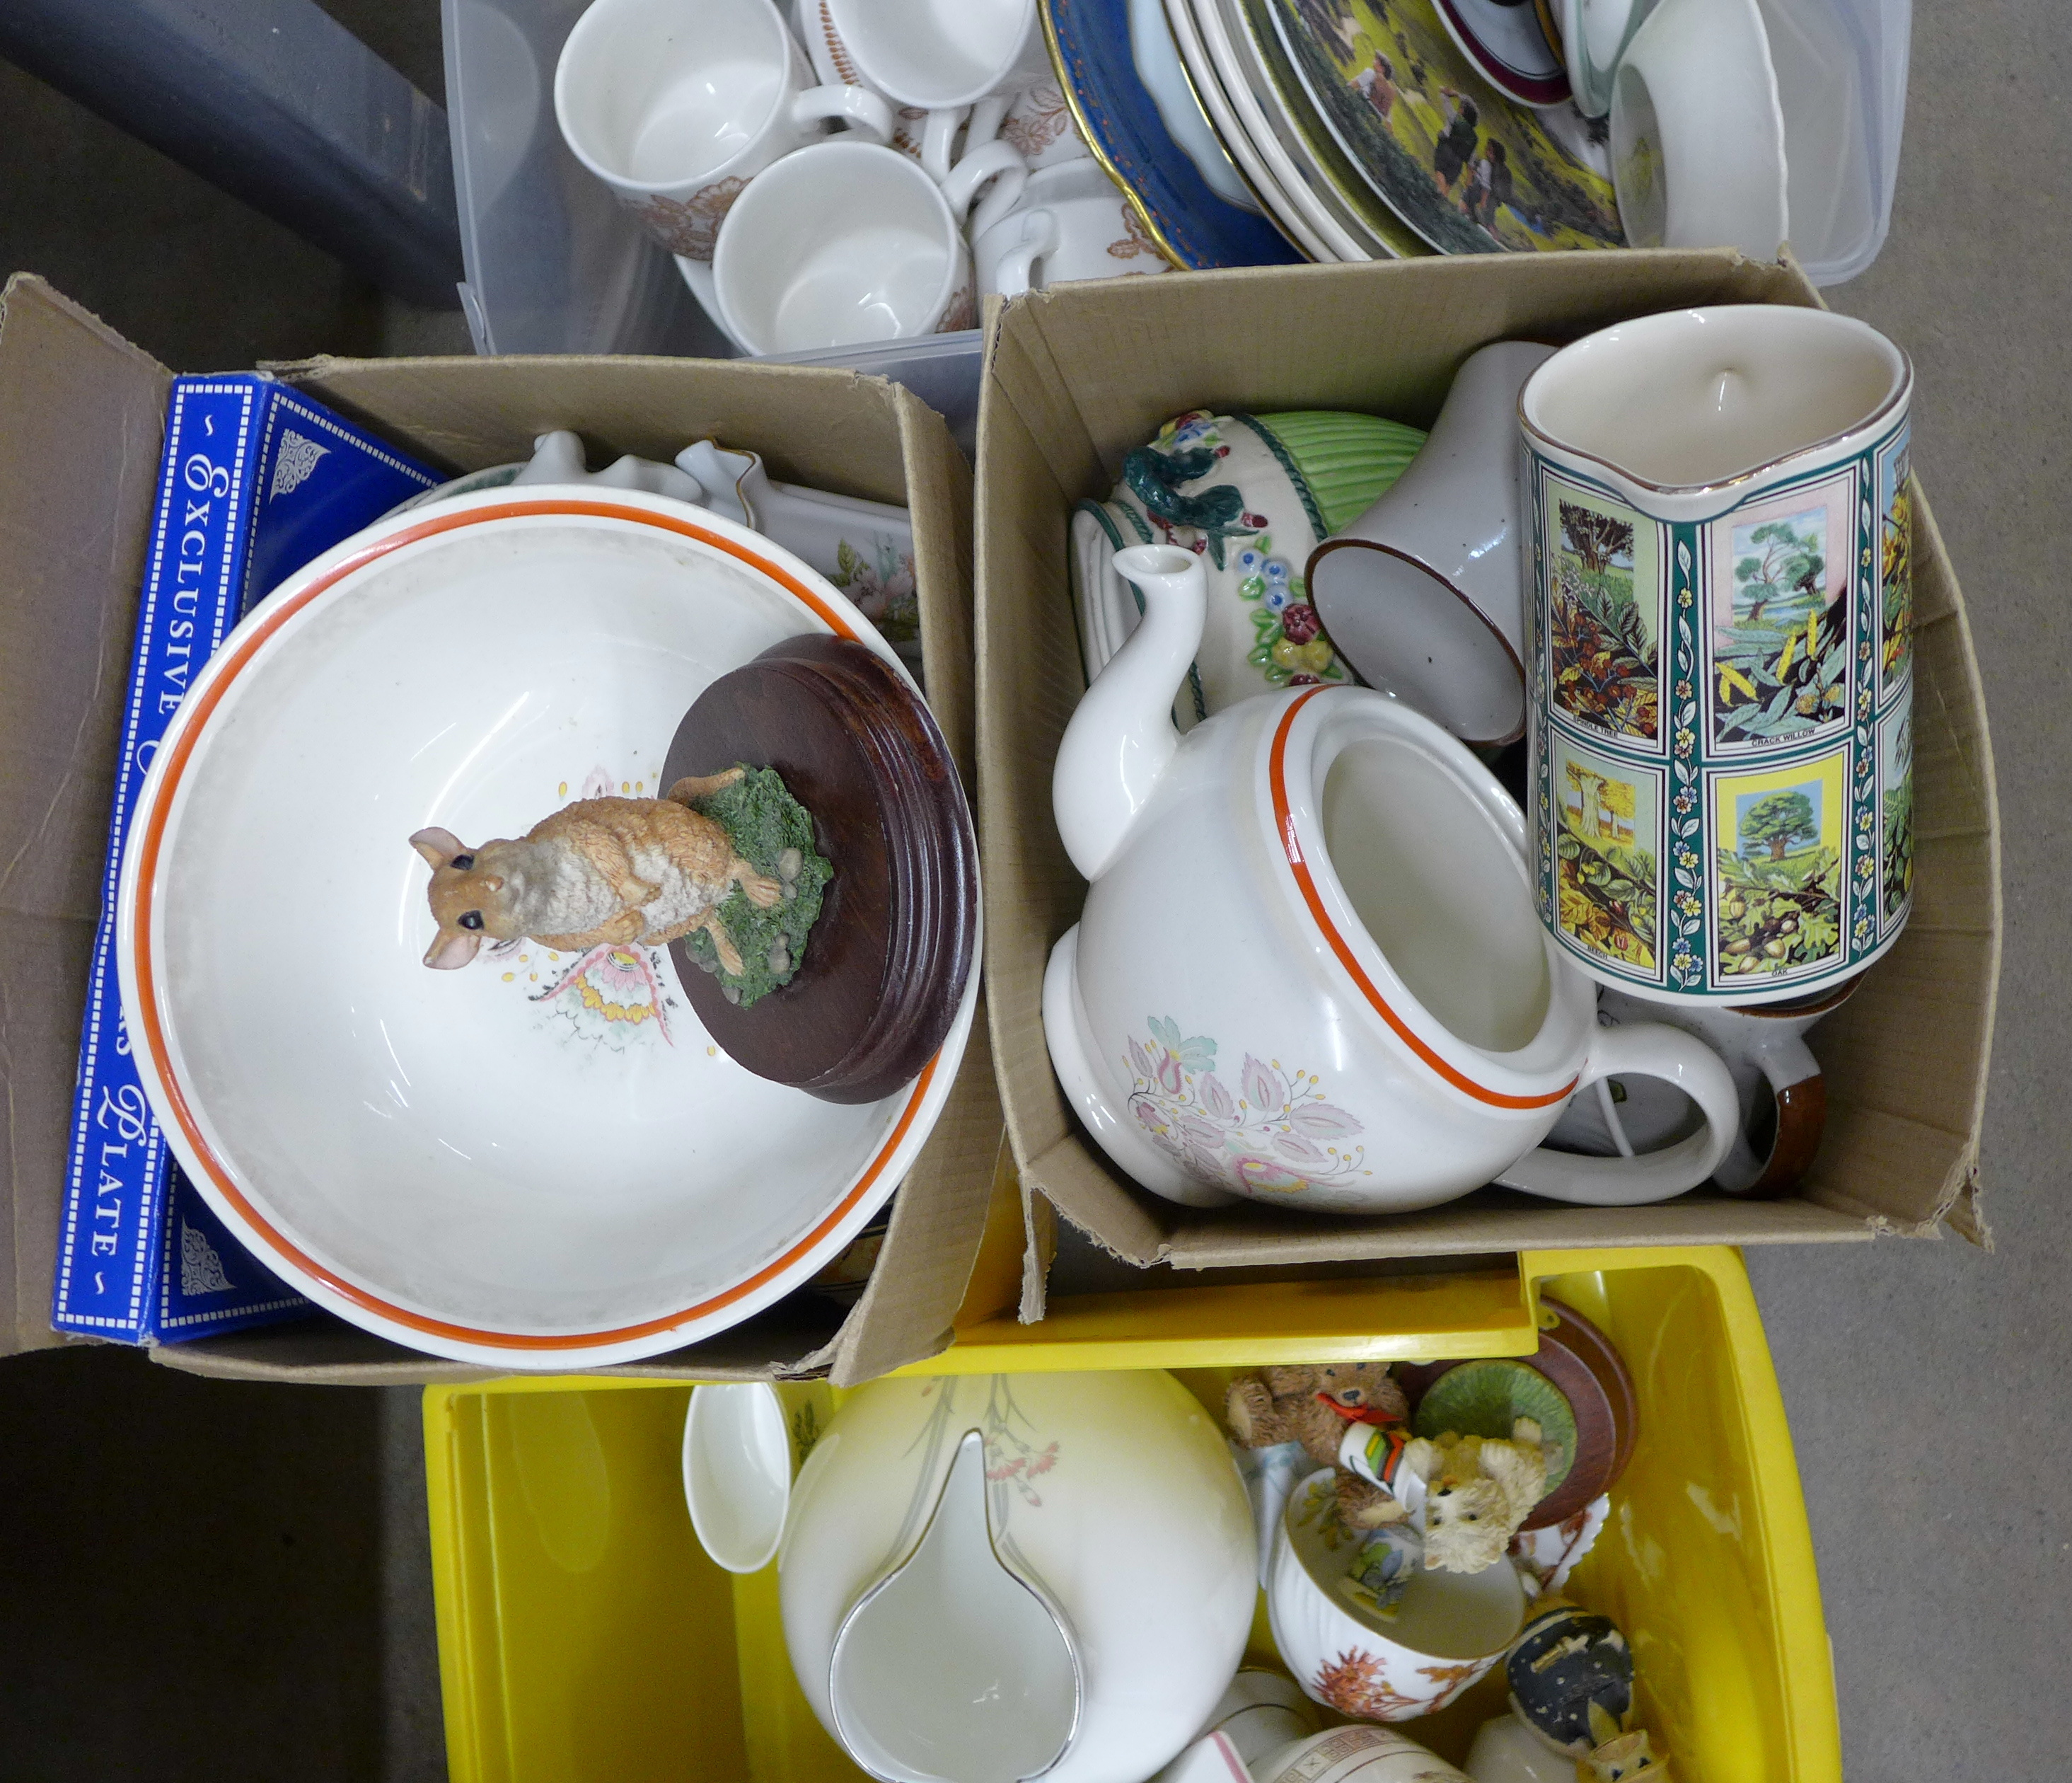 A collection of mixed china including Royal Doulton, Limoges and Hammersley and two Lord of the - Image 3 of 4